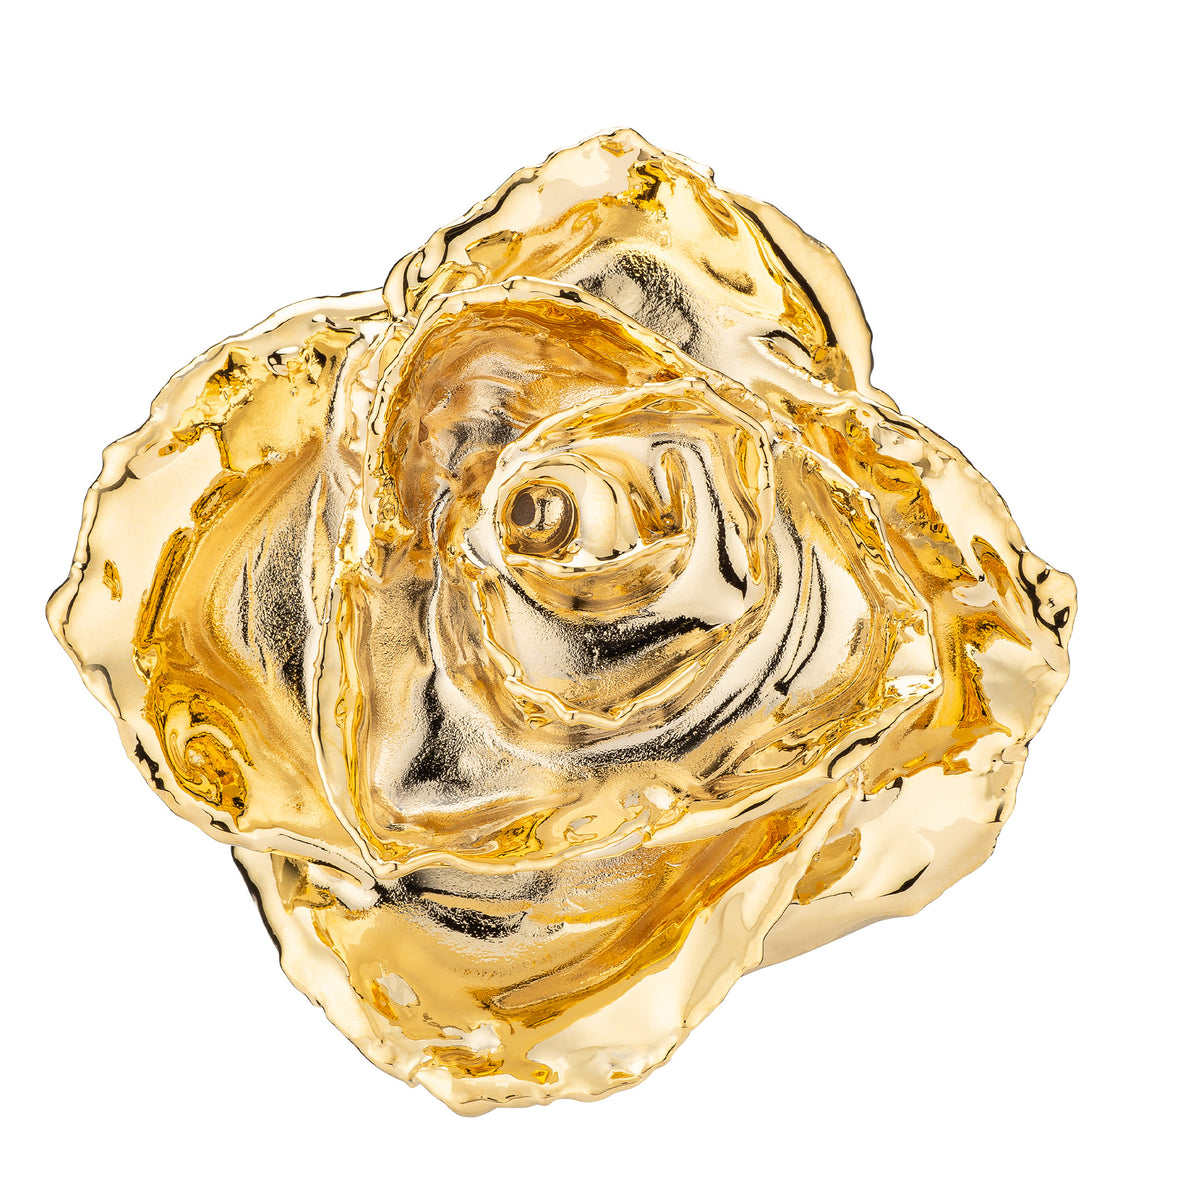 Real 24K Gold Forever Rose. Rose is fully dipped in gold. View looking down into the rose petals shows the rose petals covered in 24 karat gold.